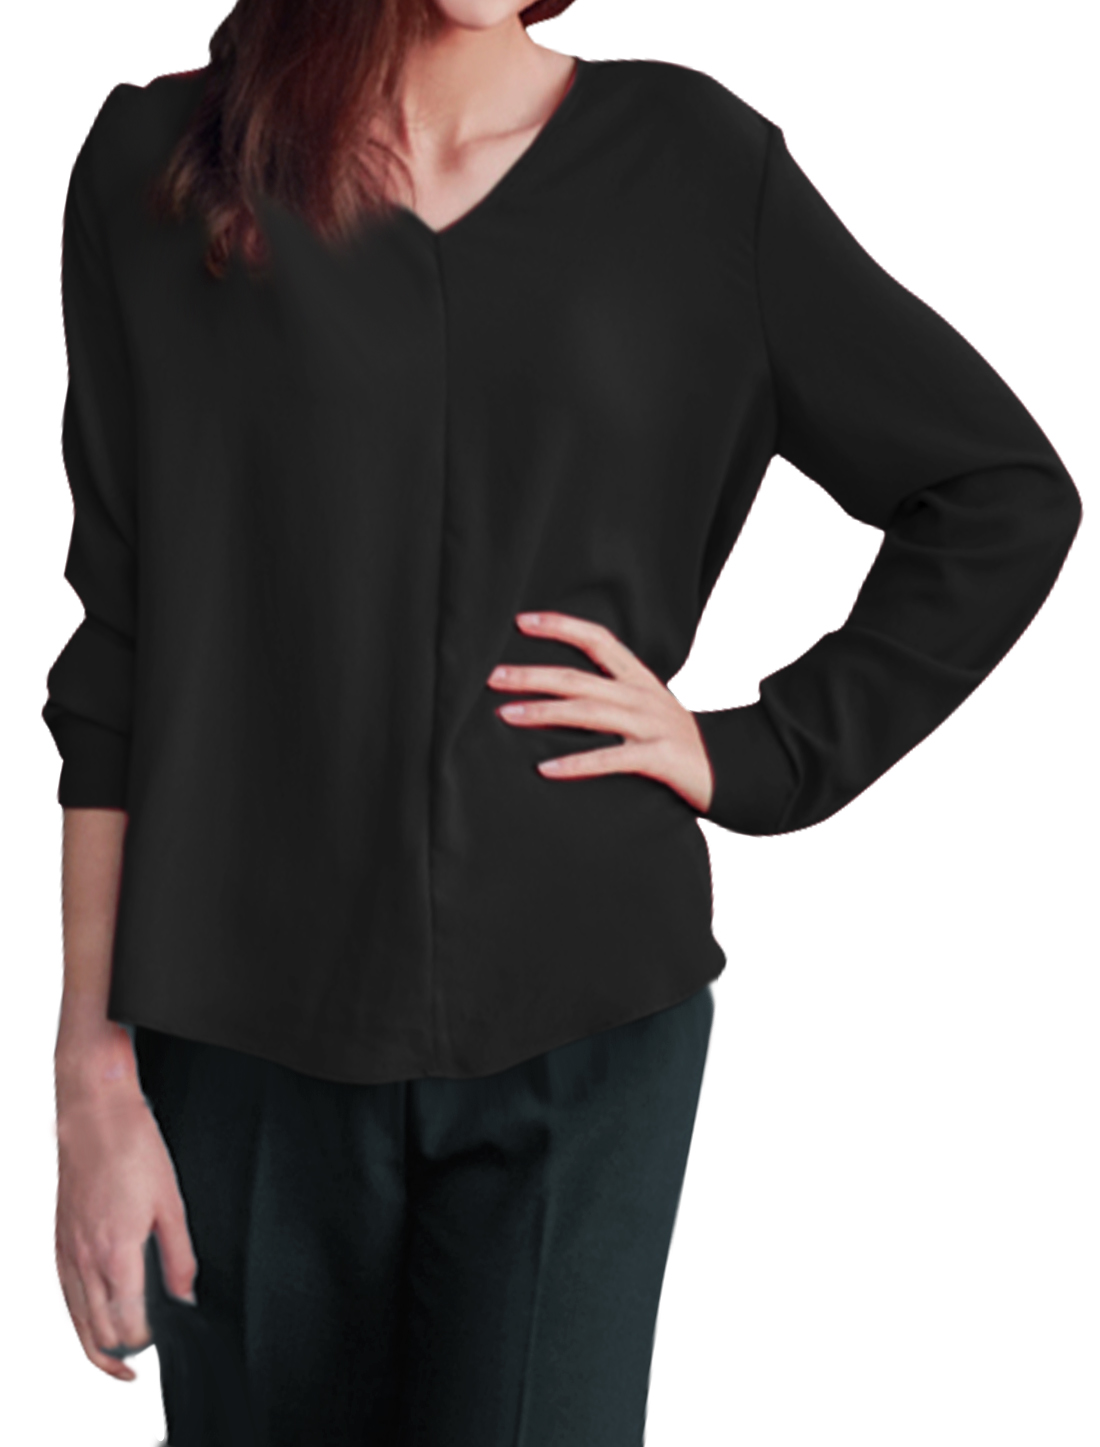 Woman V Neck Long Sleeves Low High Curved Hem Blouse Black XS